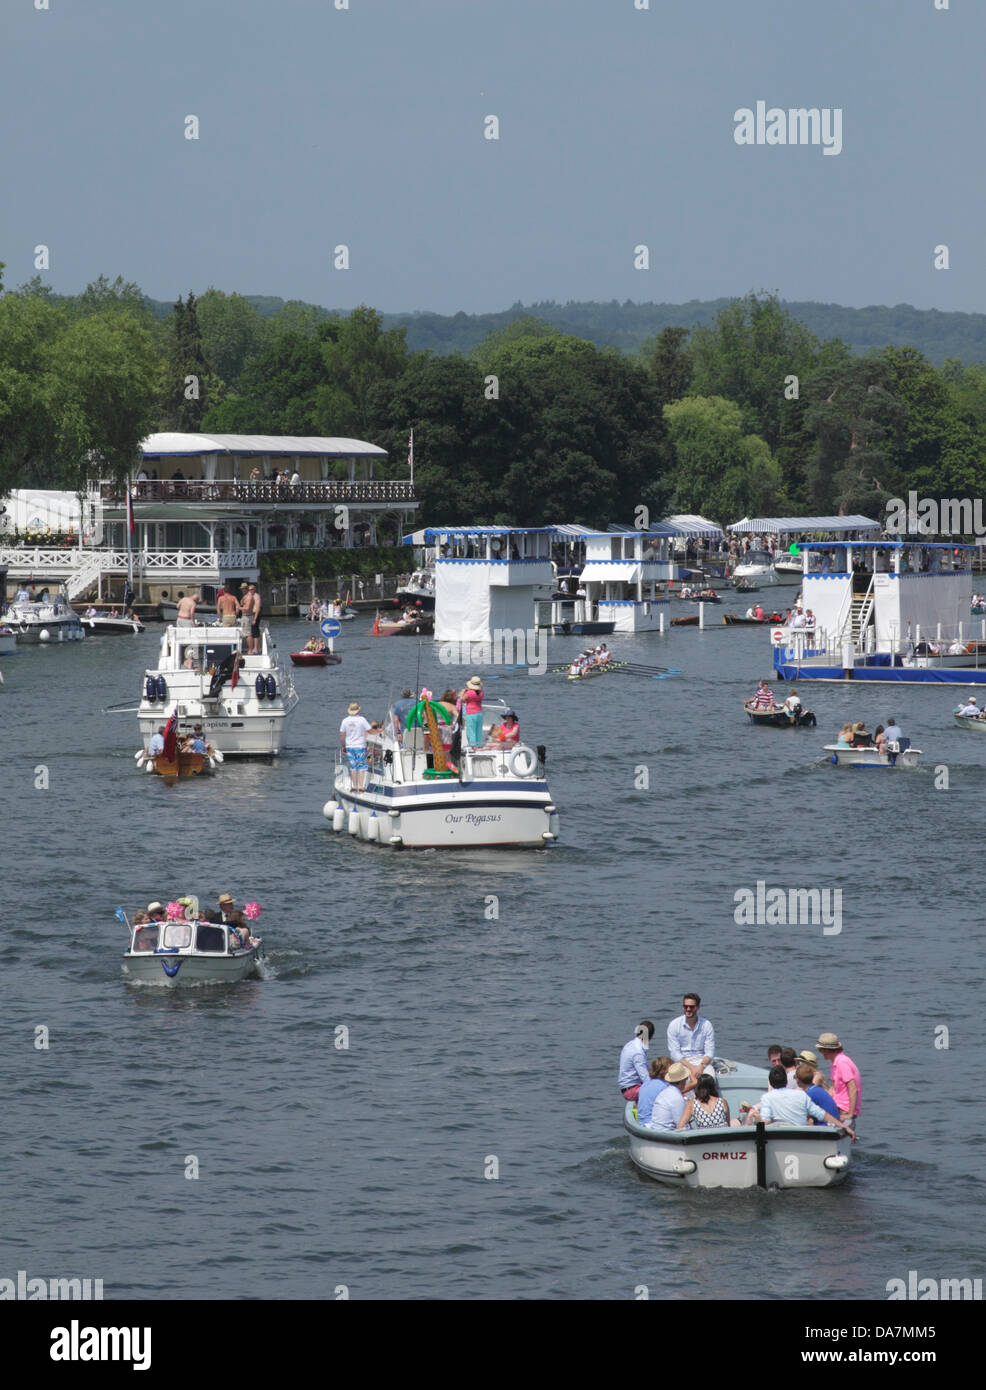 Henley, UK. 6th July, 2013. Pleasure boats at the Henley Royal Regatta River Thames Oxfordshire. - Stock Image